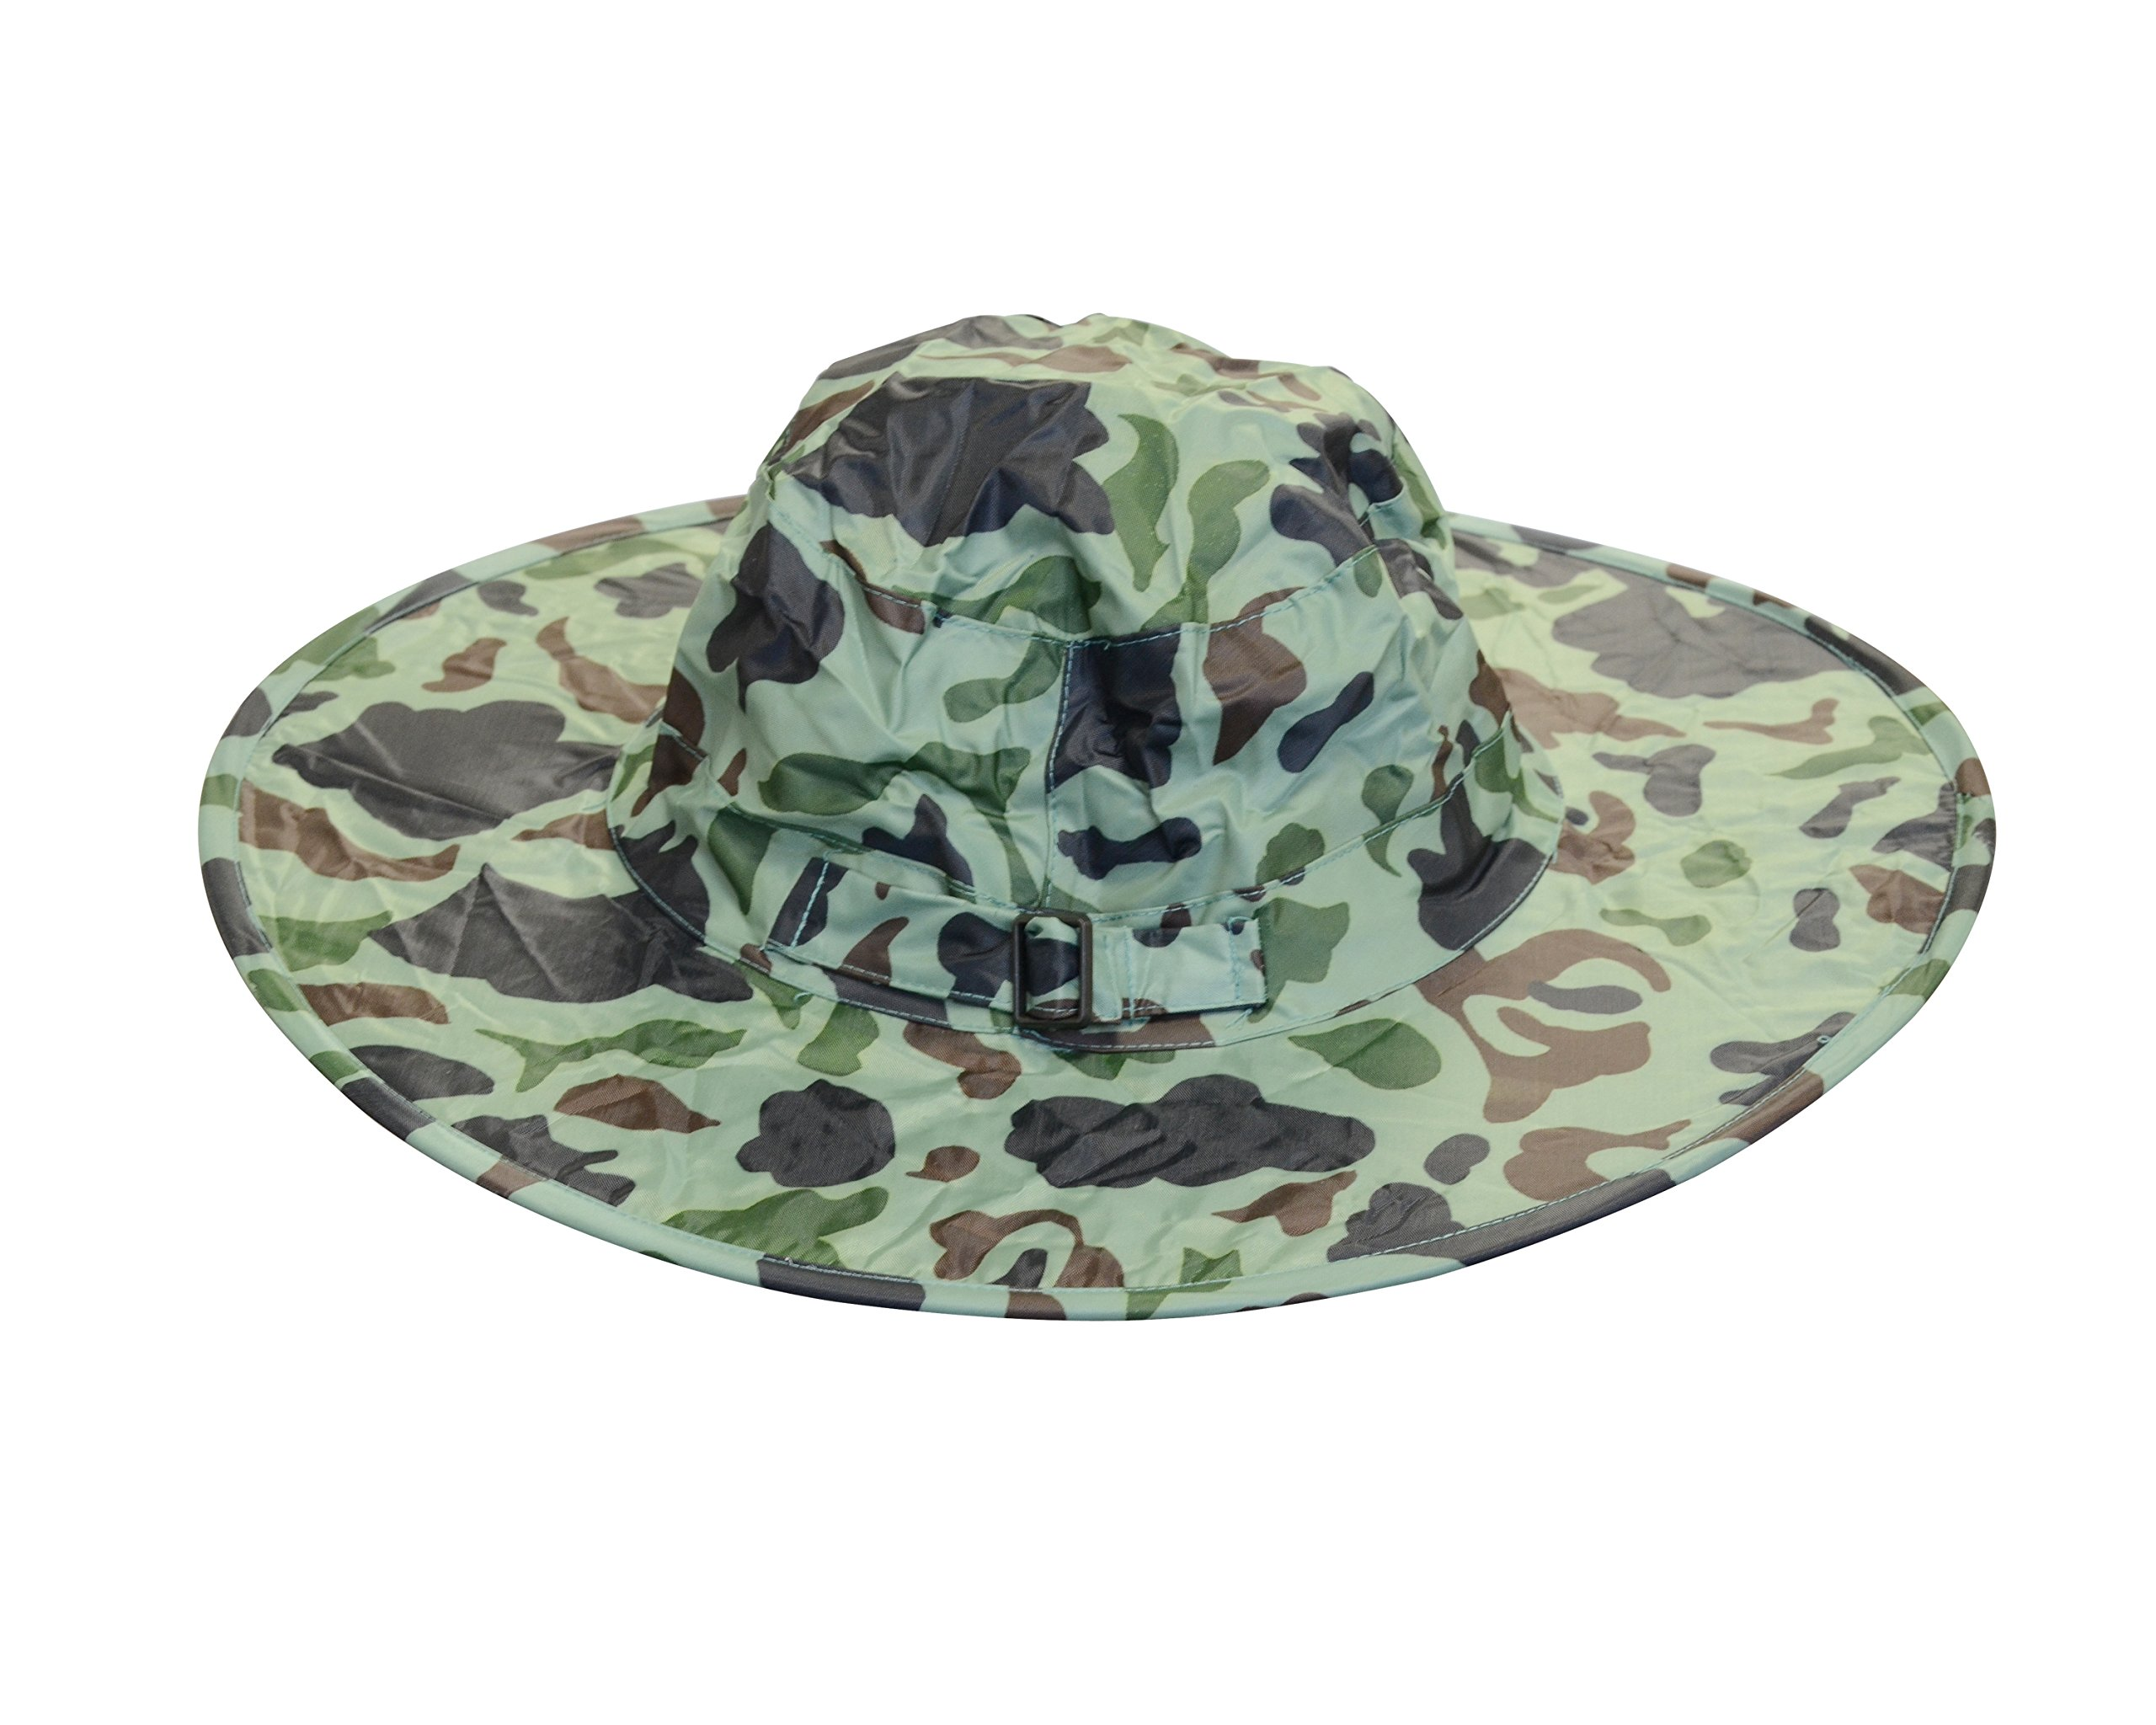 Twist-and-Fold Rain Hat, Unisex, 15 inch diameter brim, Camouflage